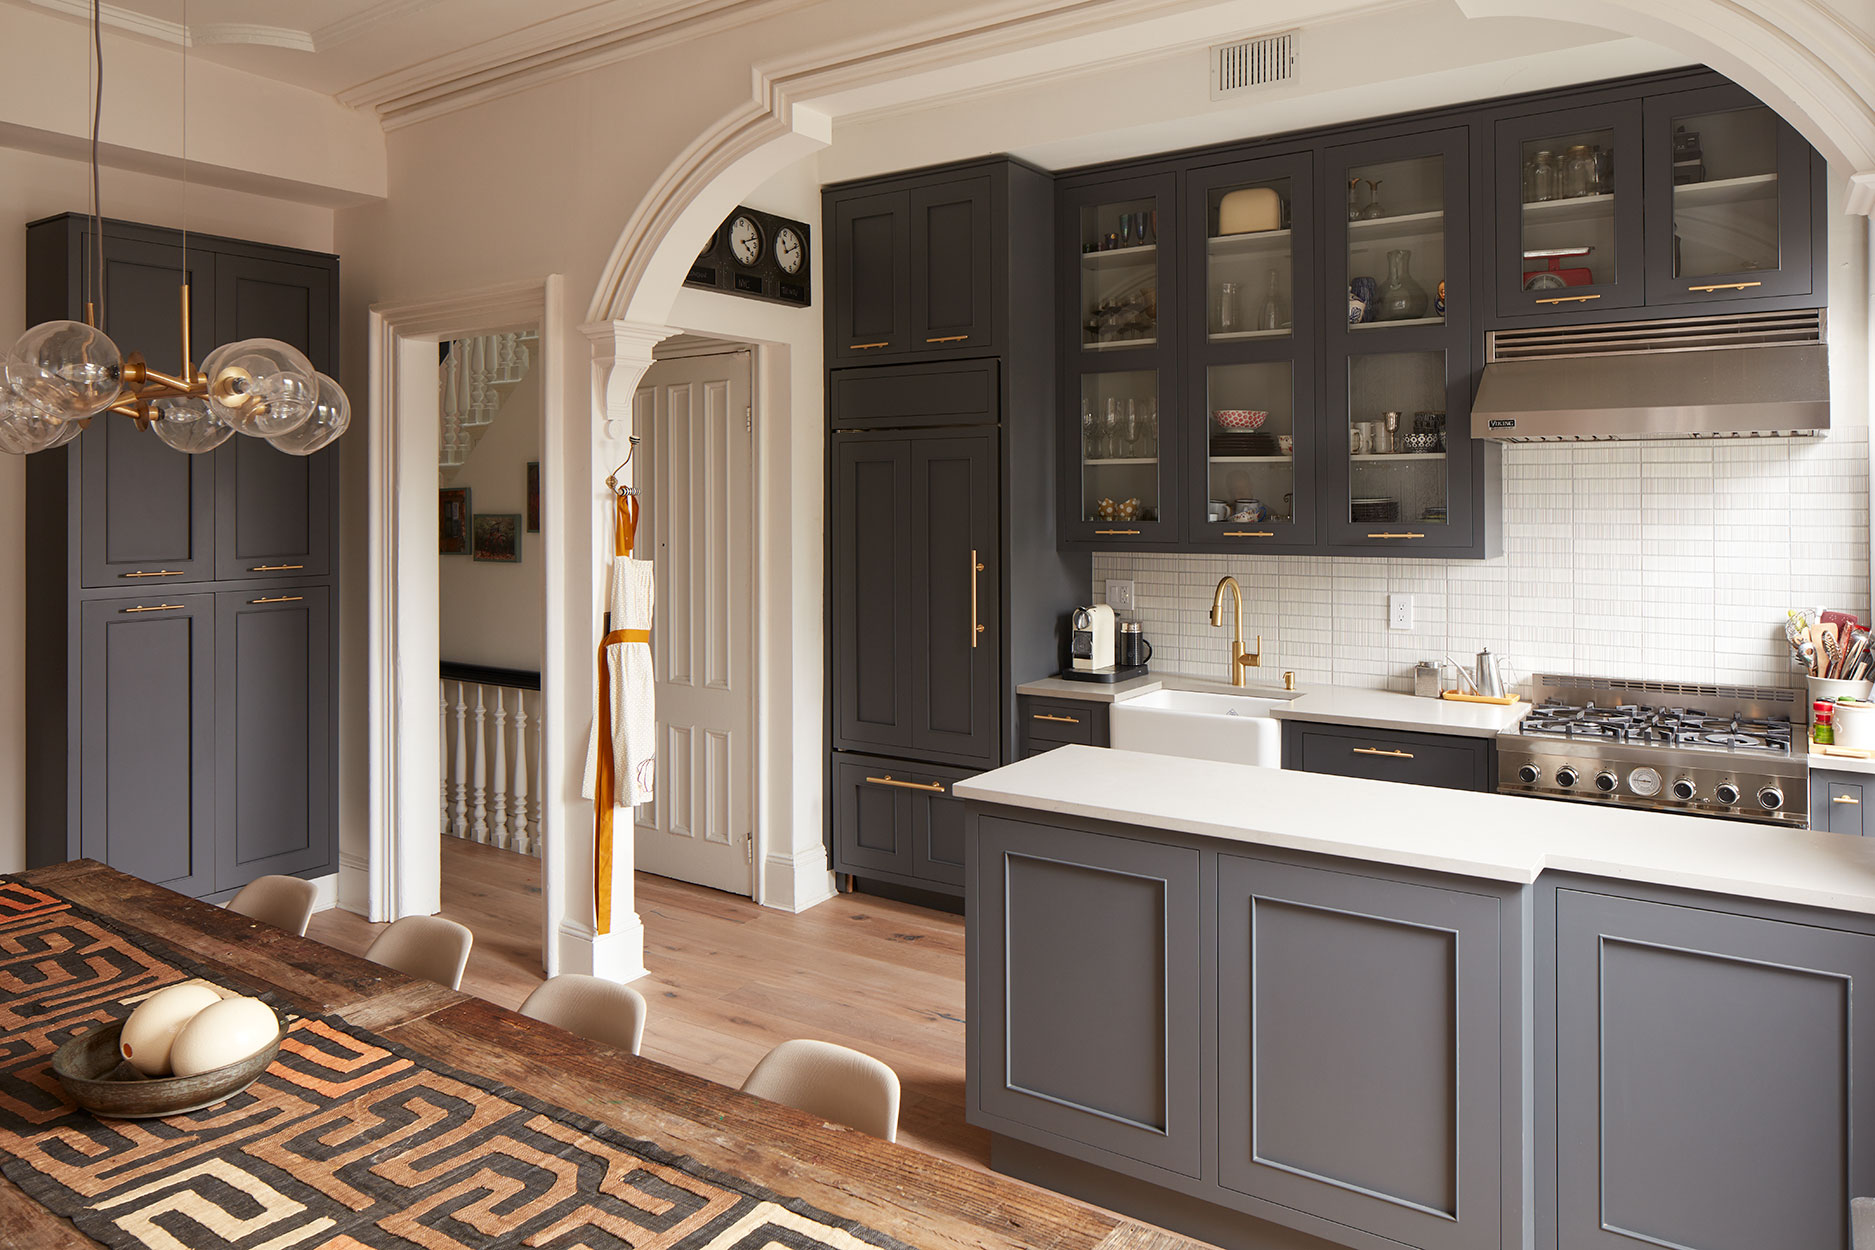 Waterfront Kitchens